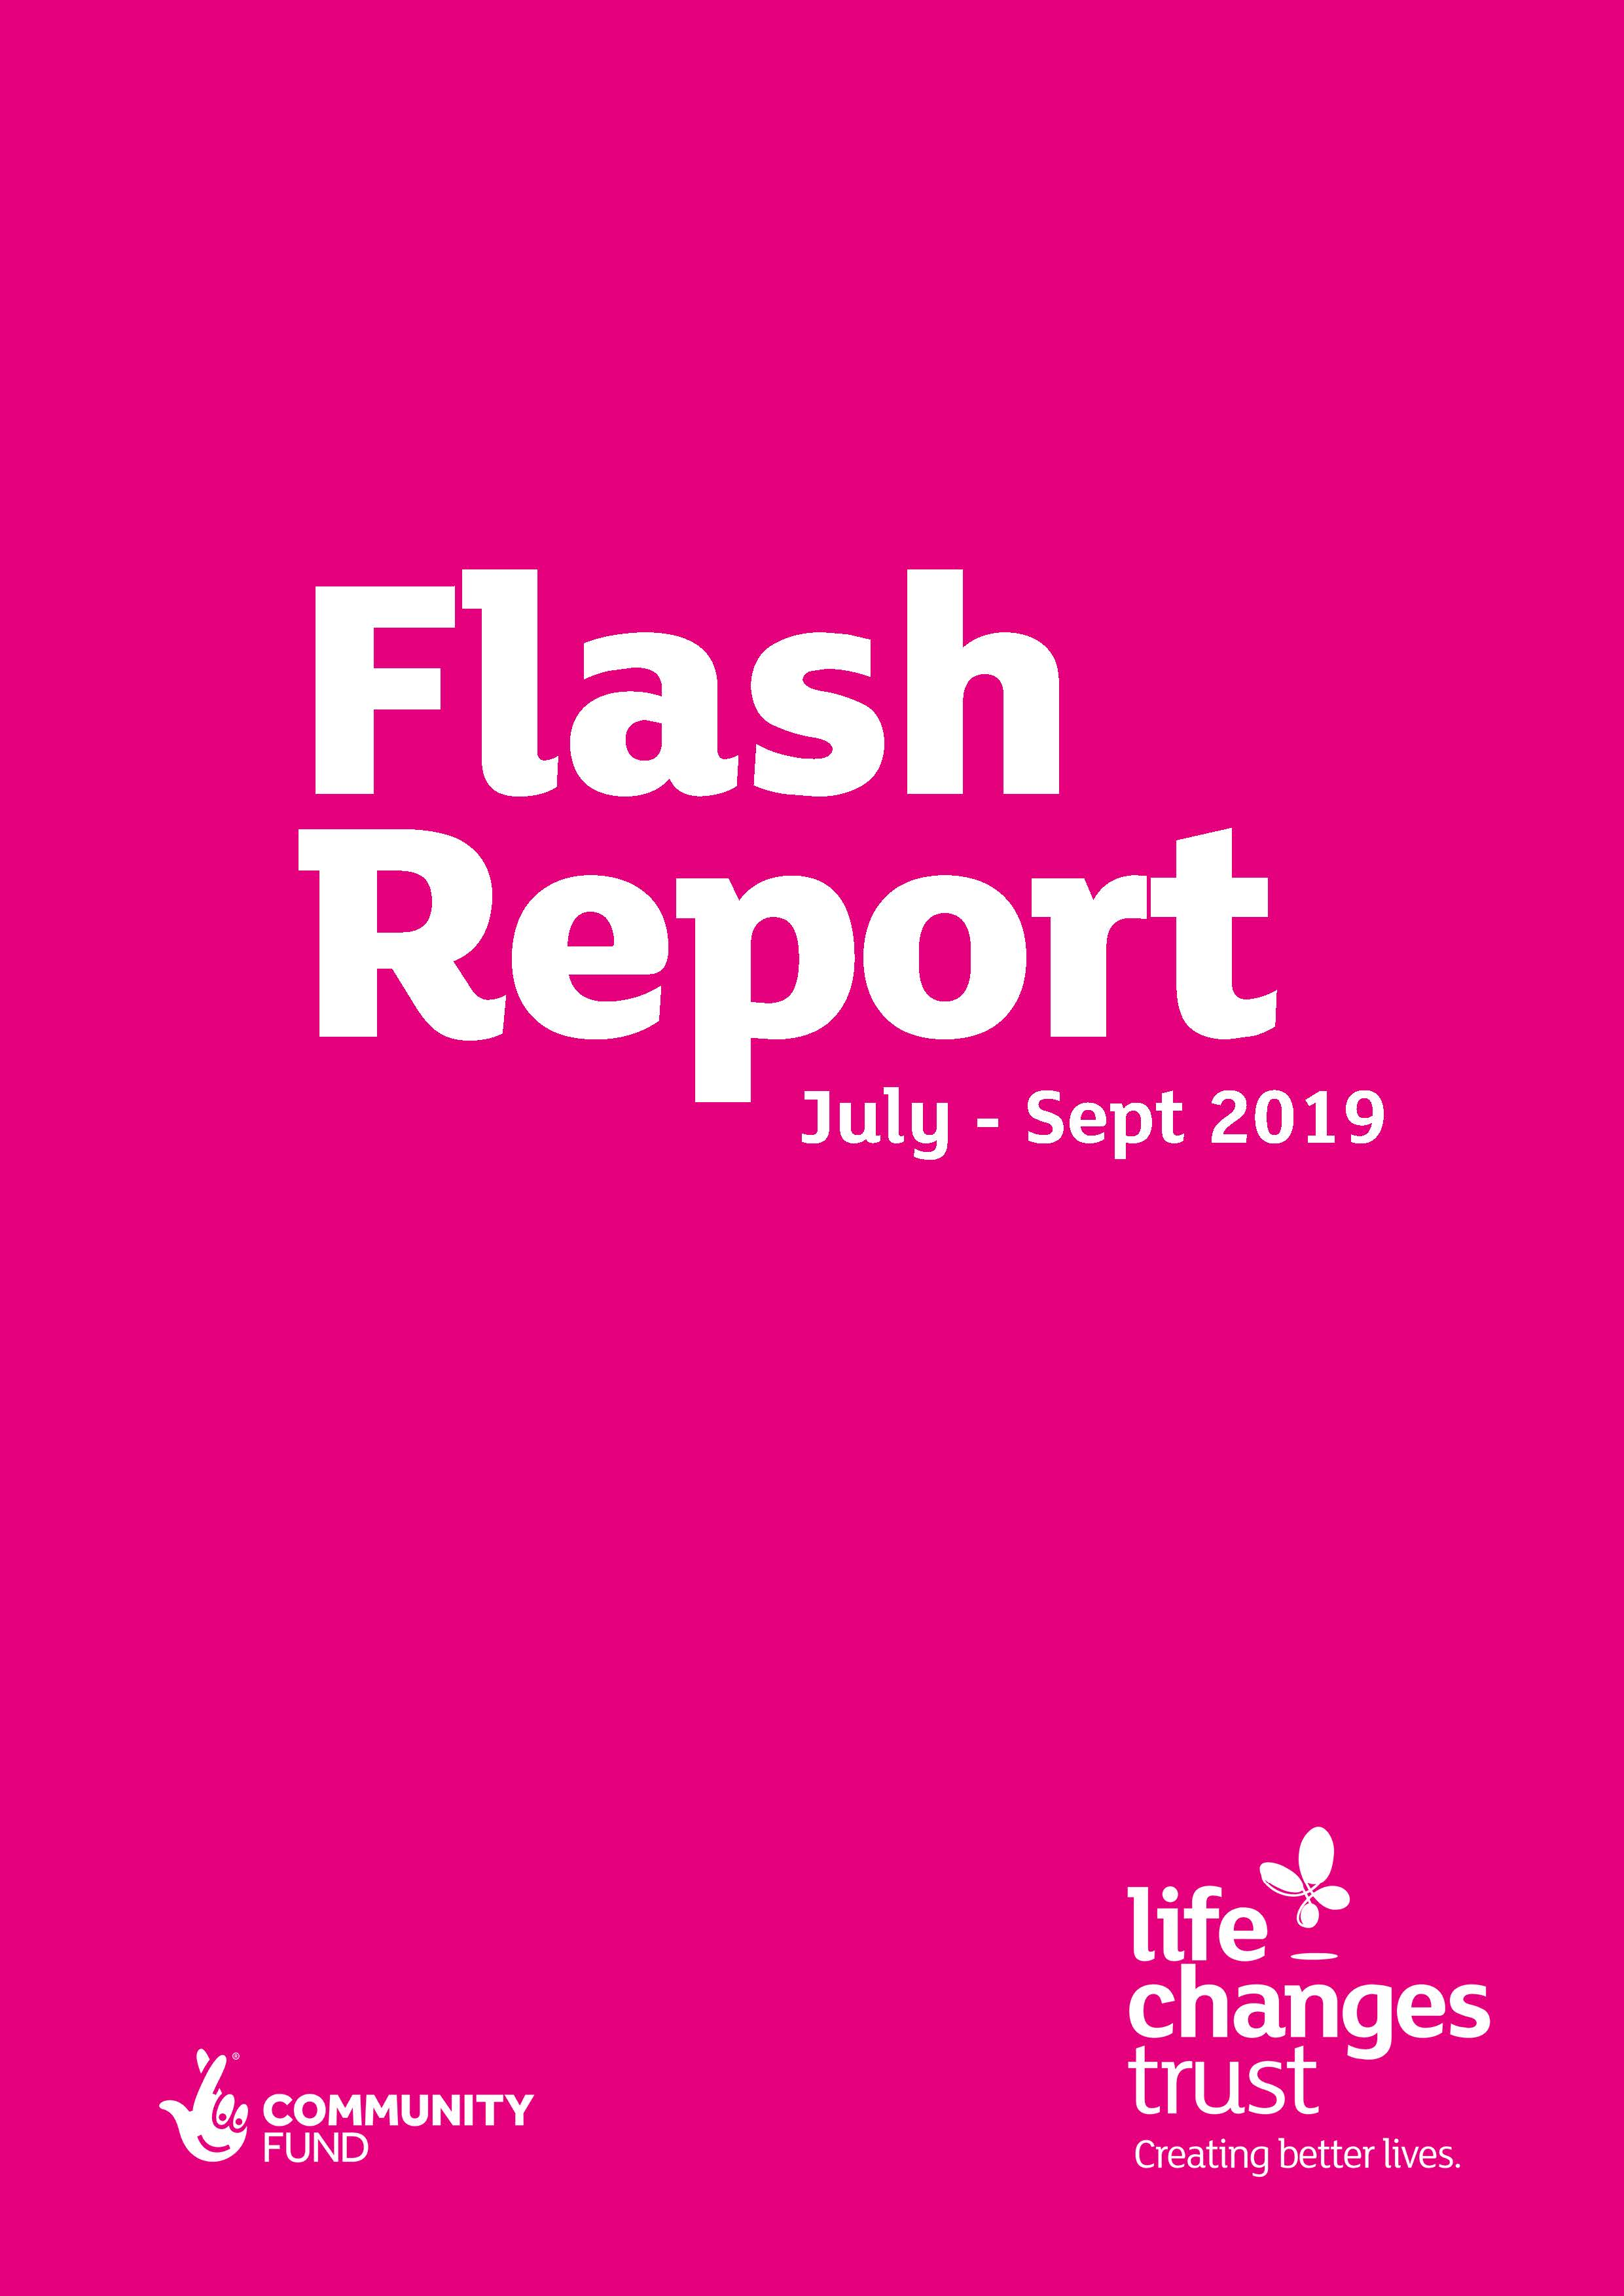 Life Changes Trust Flash Report July - September 2019